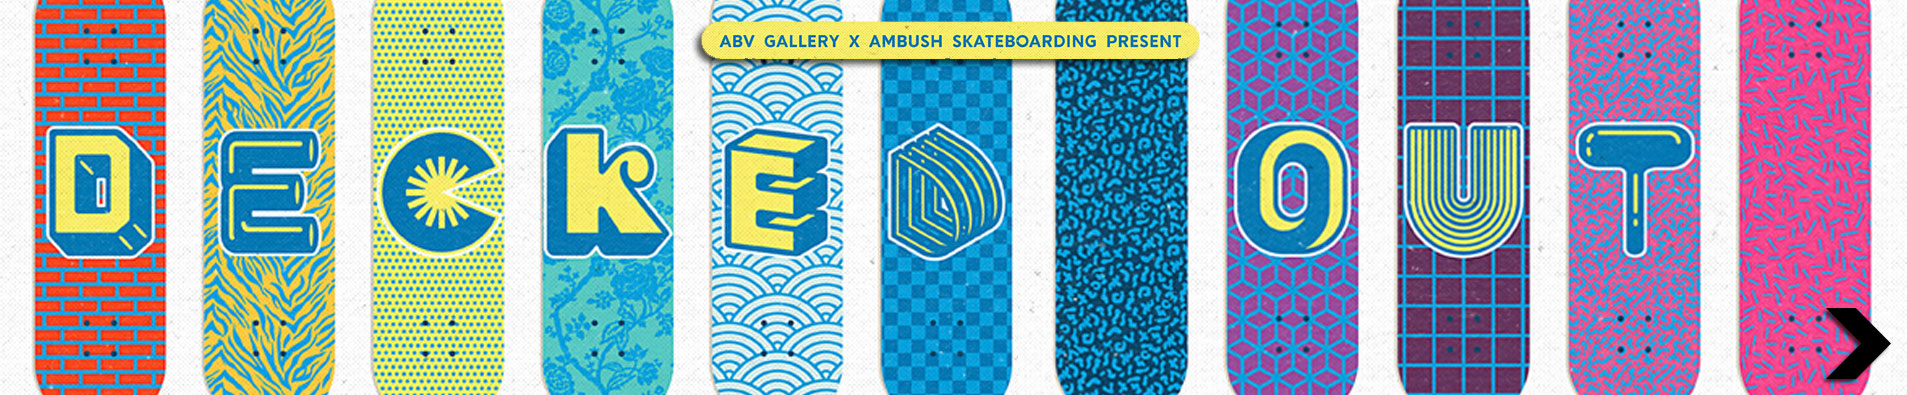 Ambush Skateboarding x ABV Gallery present Decked Out Art Show